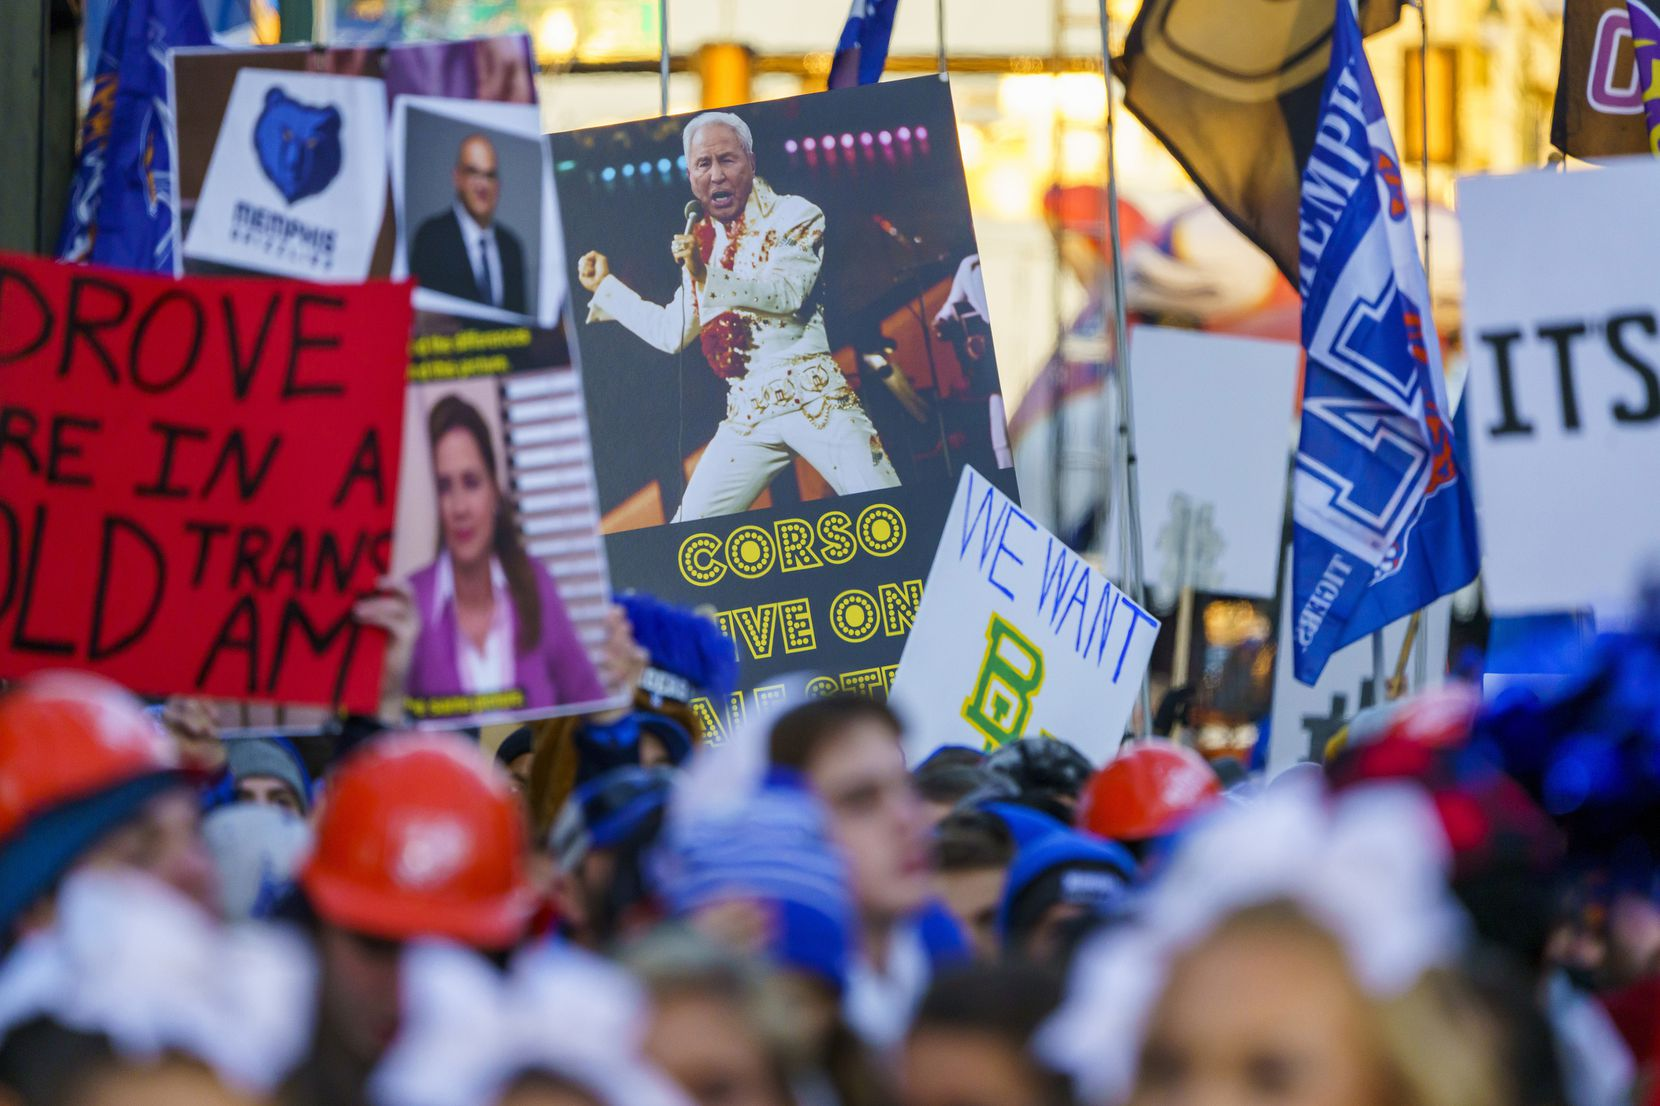 Signs fill Beale Street during ESPN College GameDay before an NCAA football game between Memphis and SMU on Saturday, Nov. 2, 2019, in Memphis, Tenn.